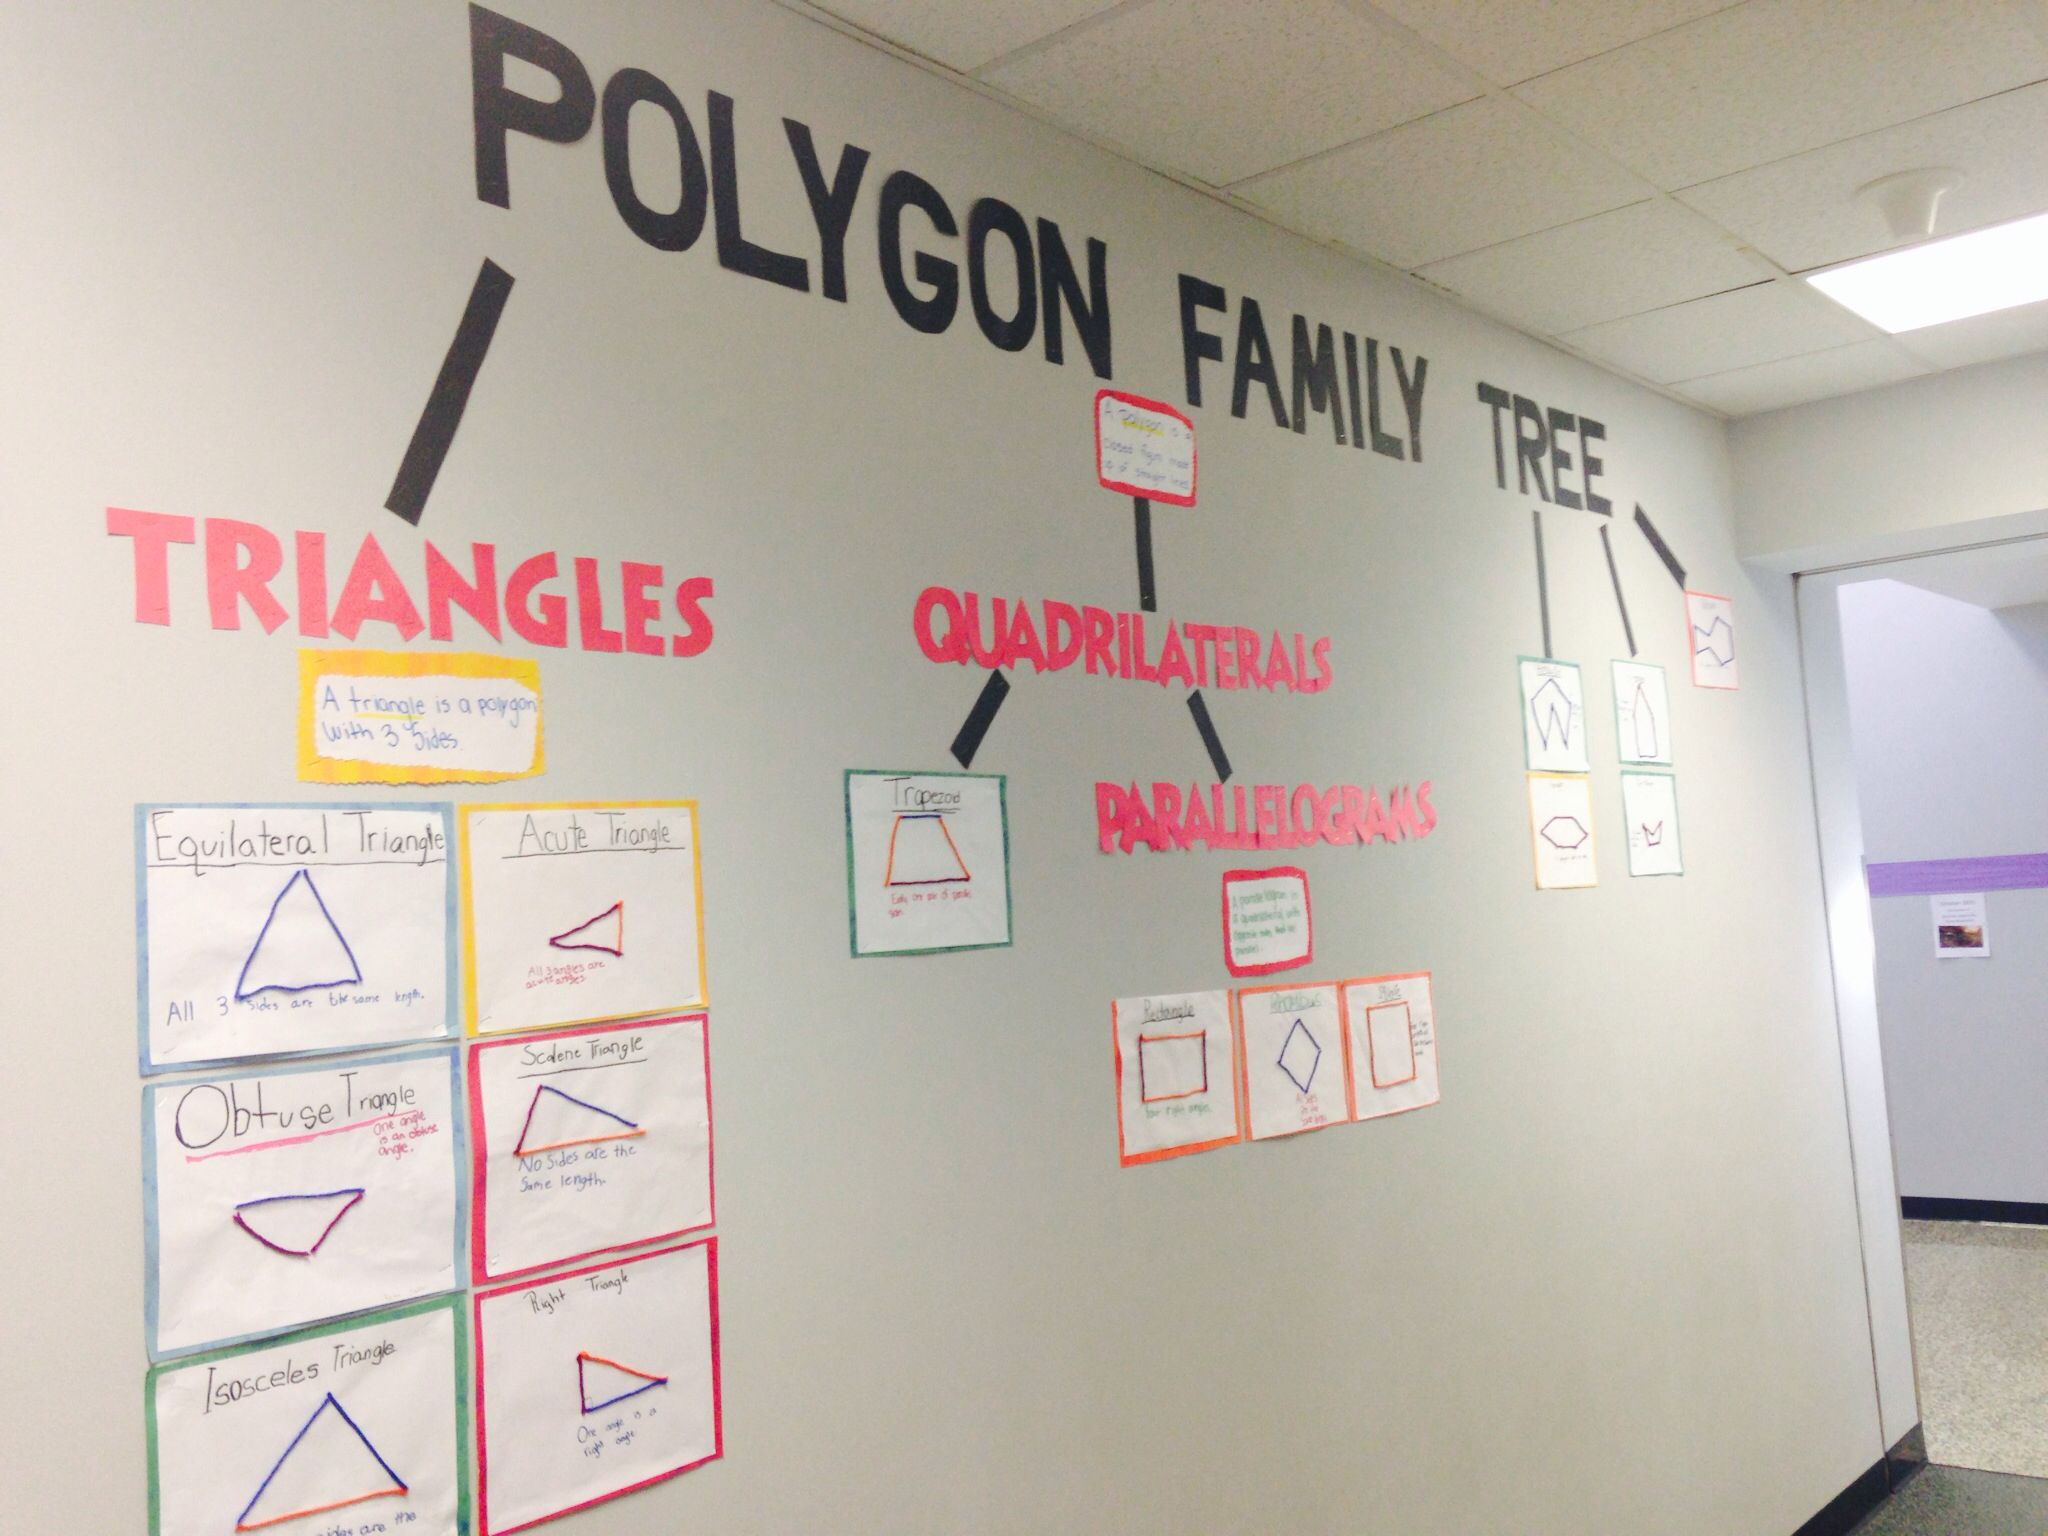 Polygon Family Tree